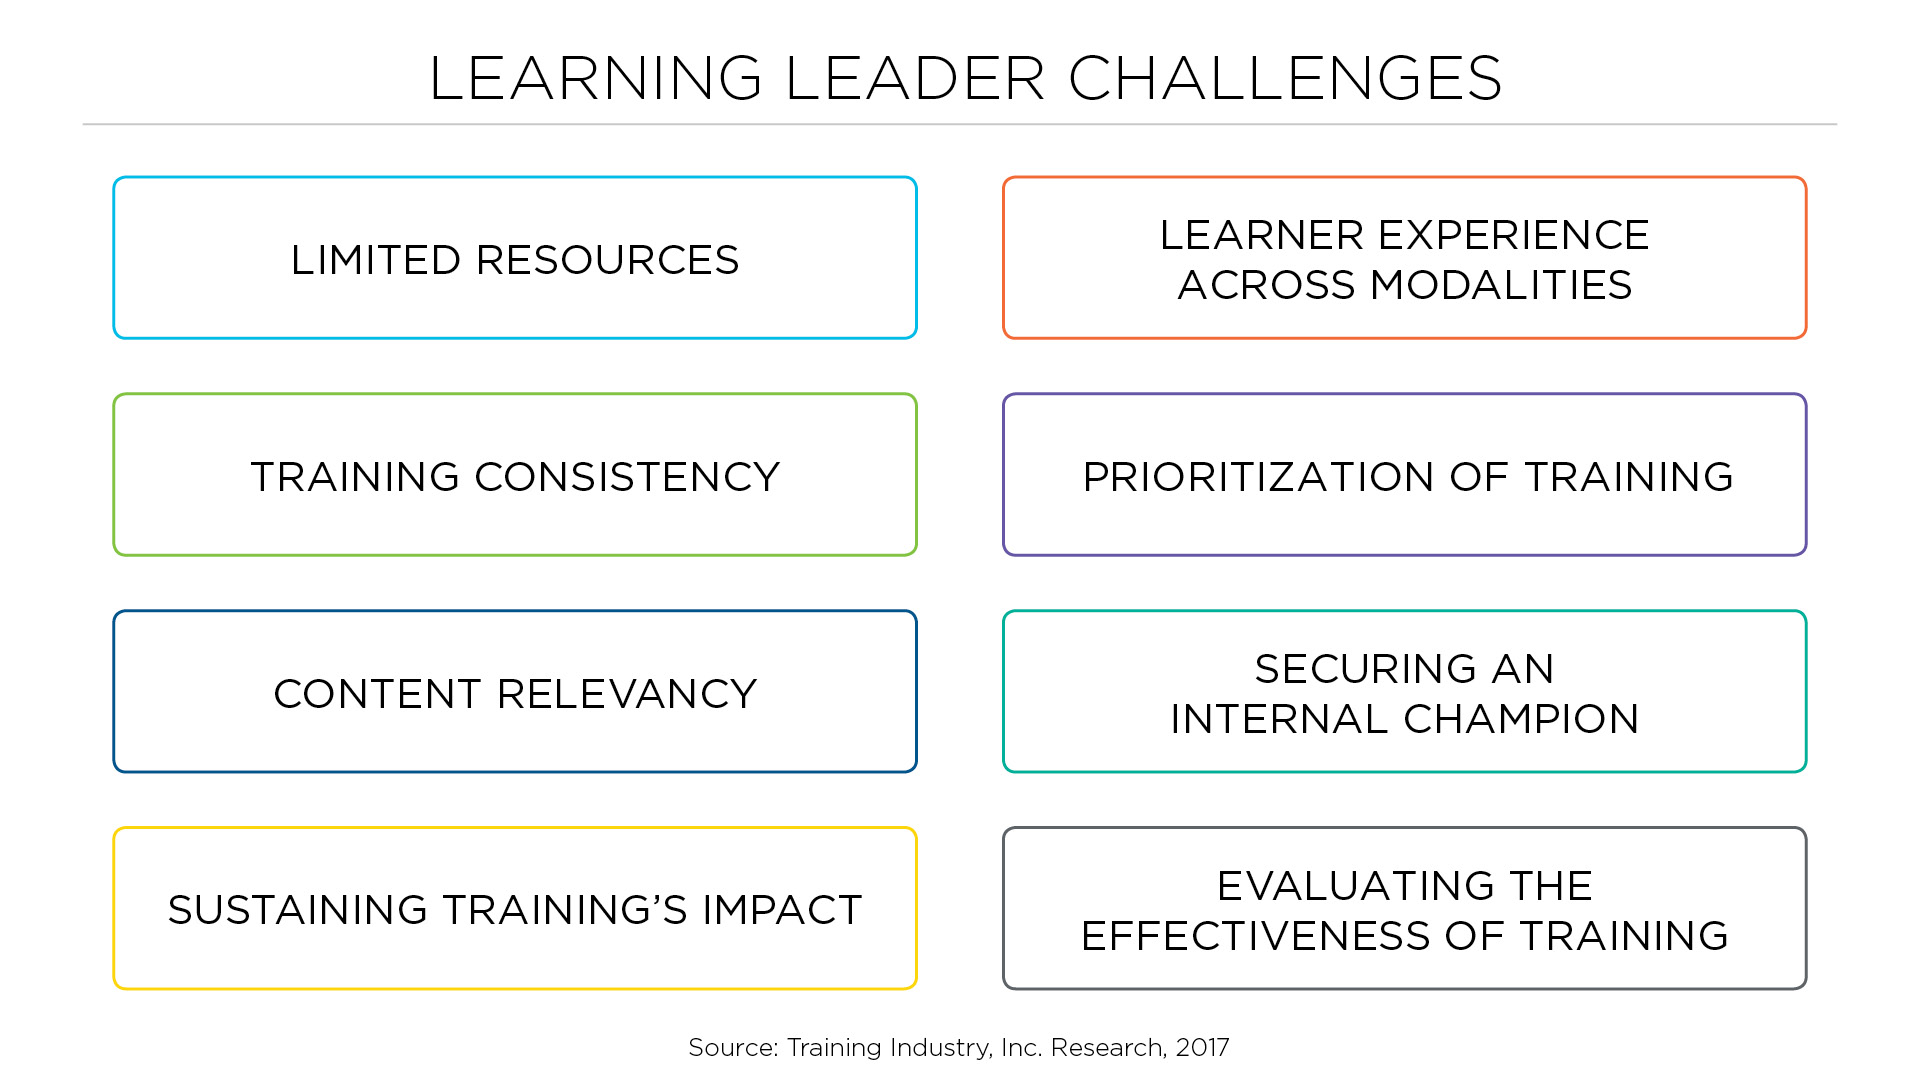 Learning Leader Challenges